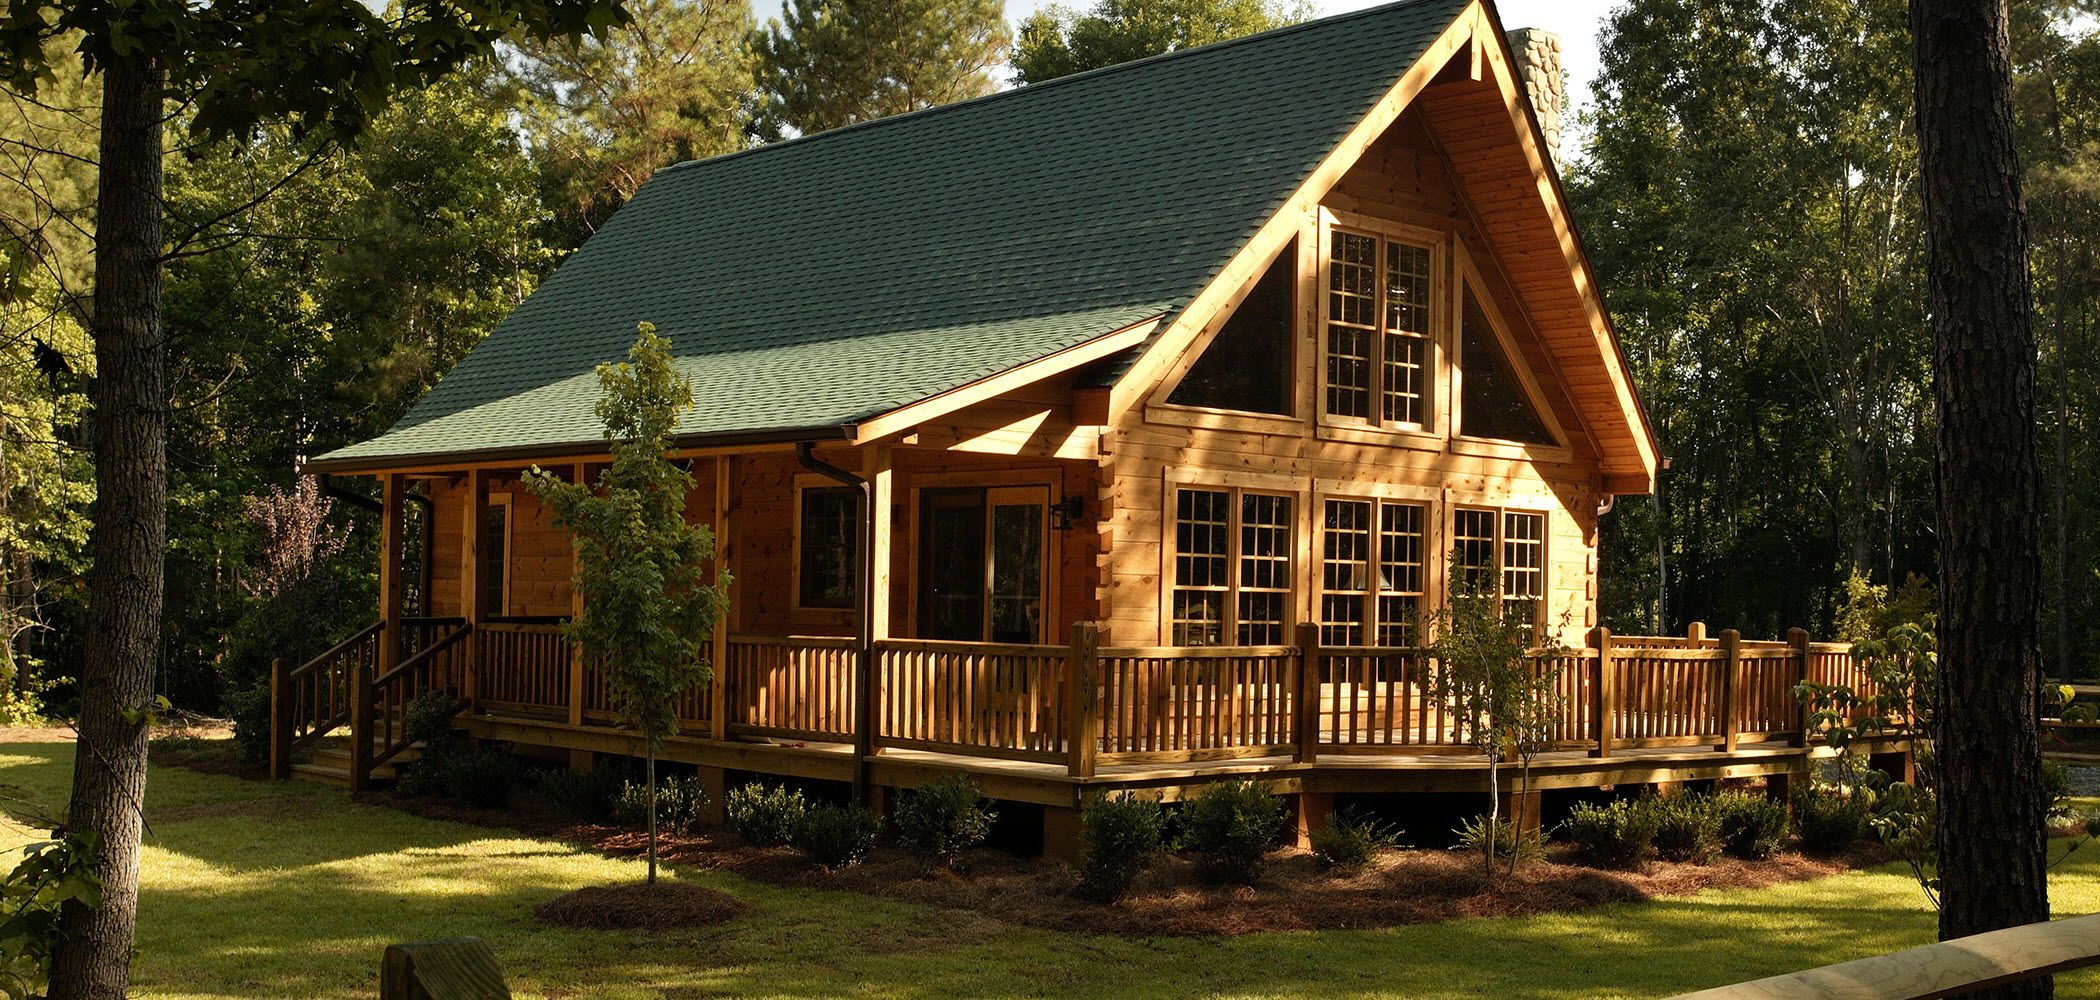 cabins with sale for cabin homes modern inspiration alabama home in louisiana on designing log